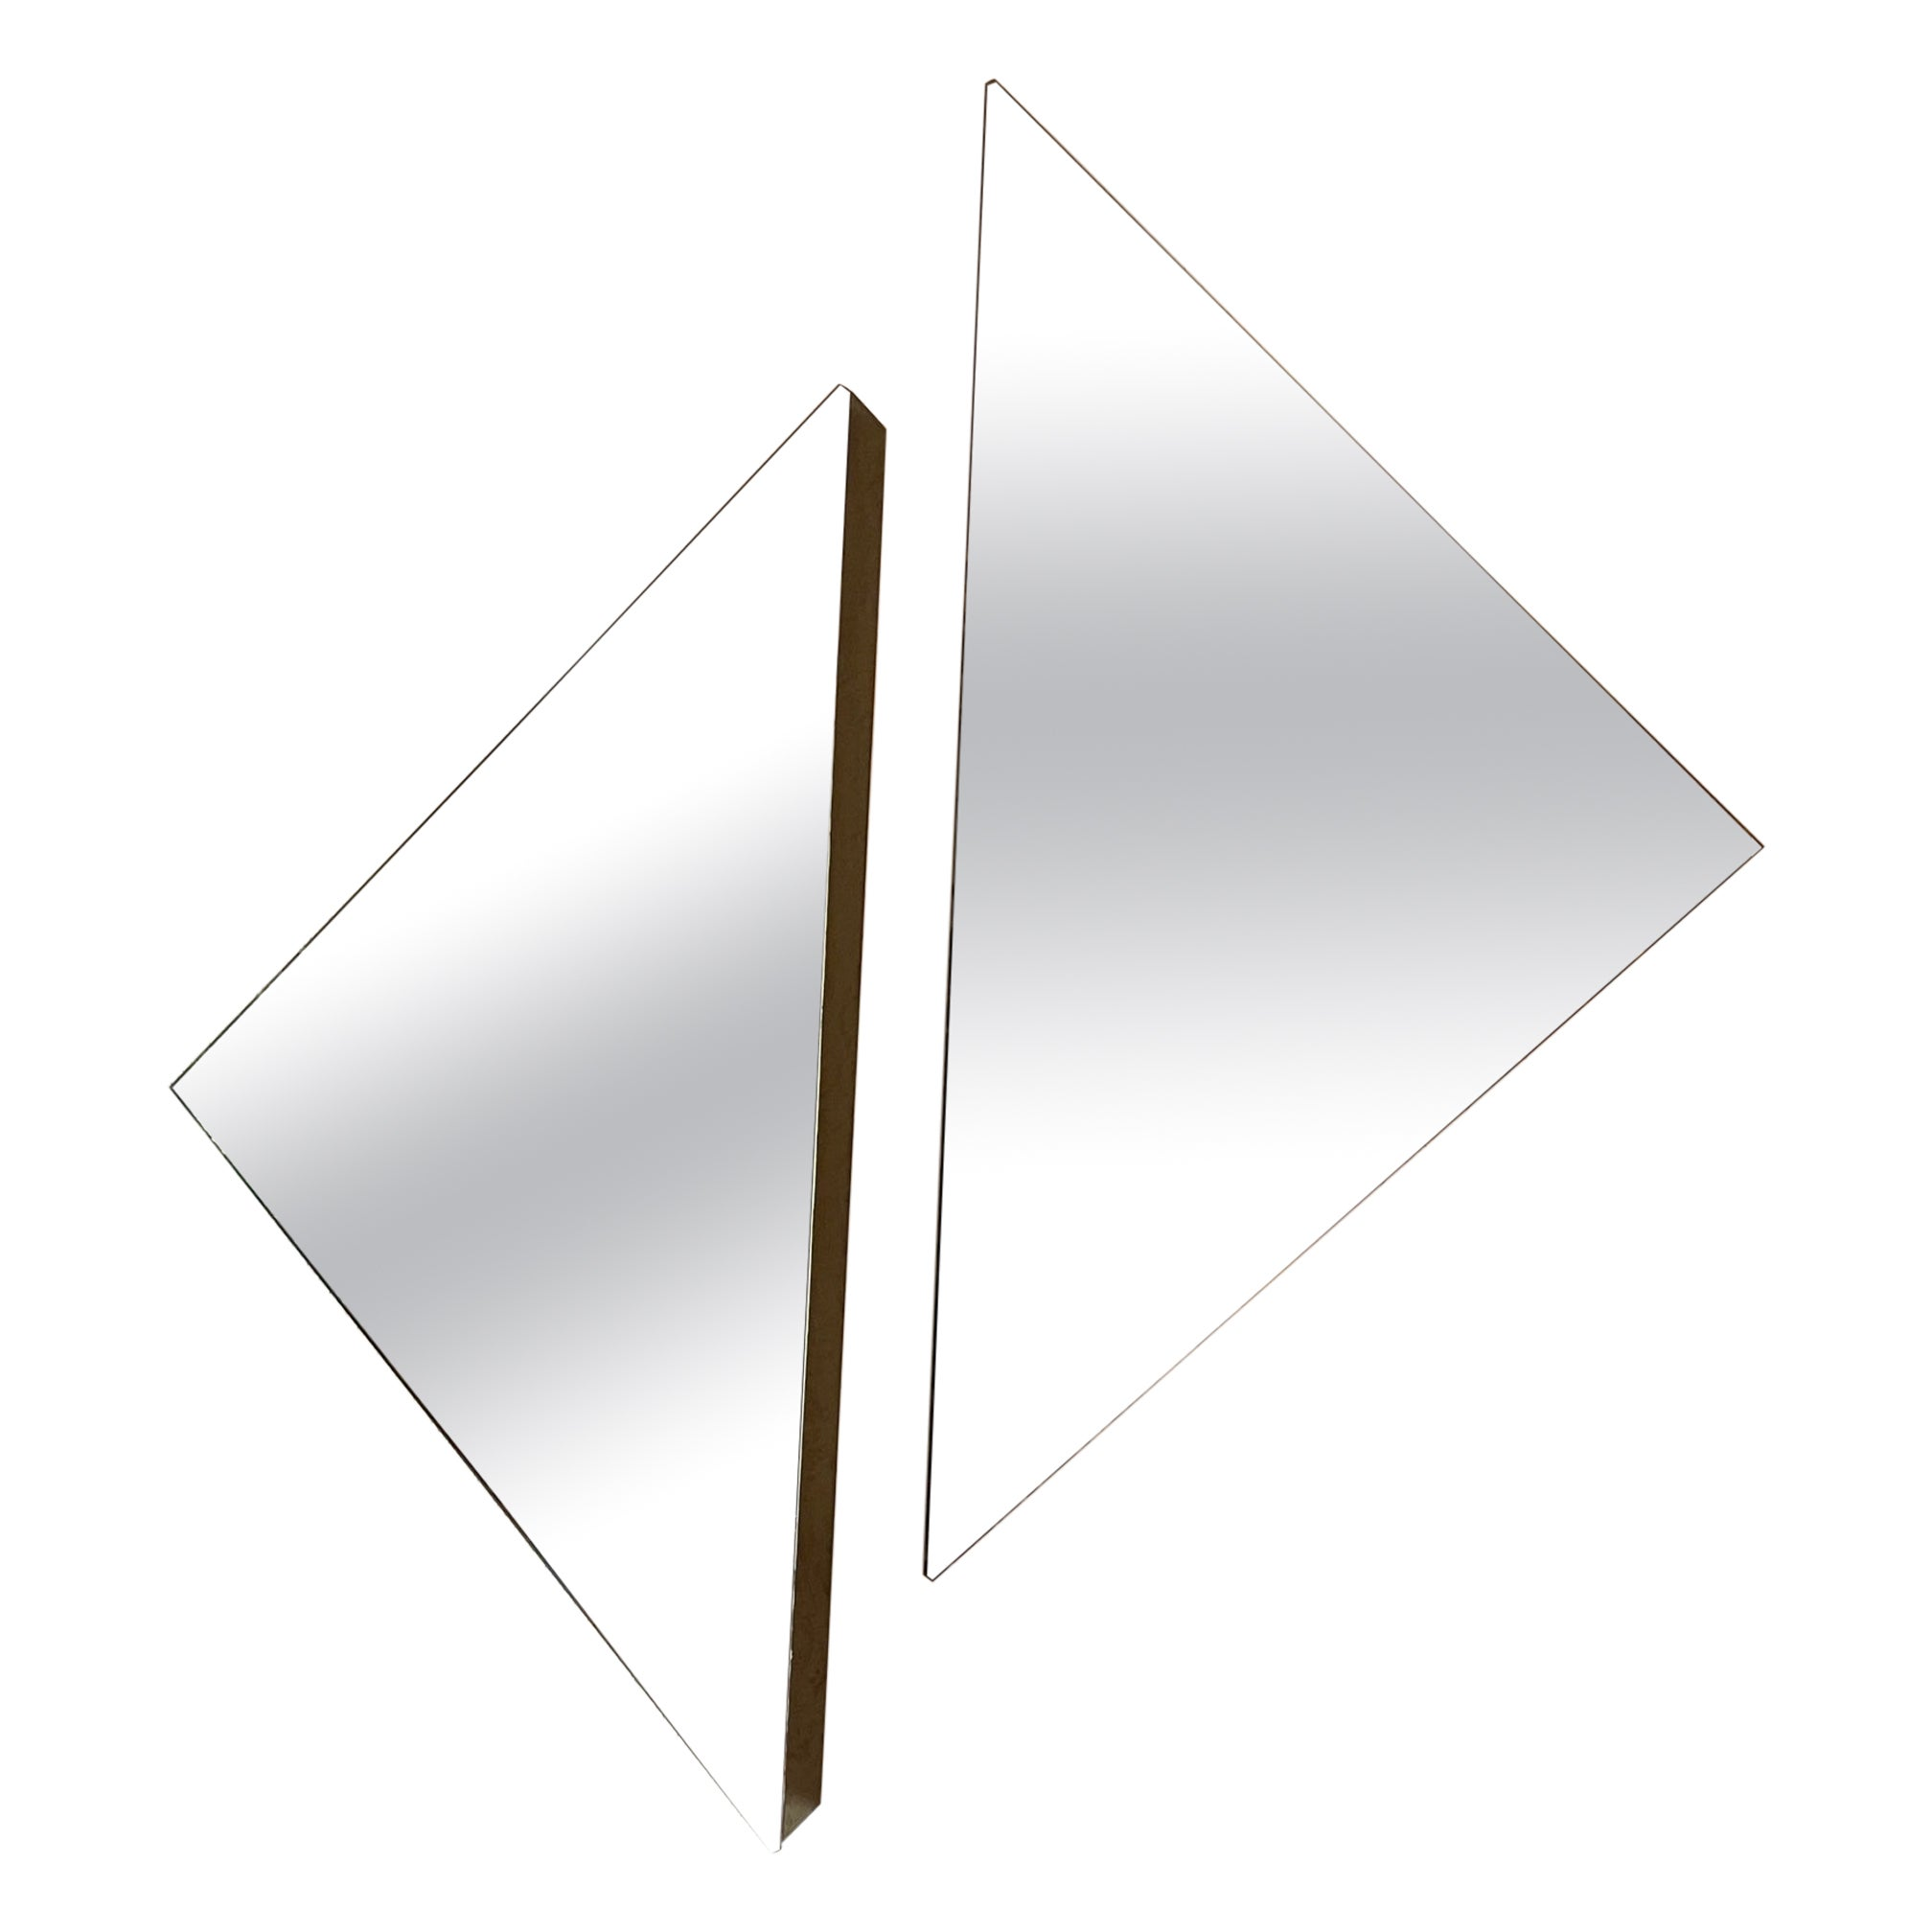 Pair of Triangle Shaped Contemporary Modern Frameless Mirrors, 20th Century